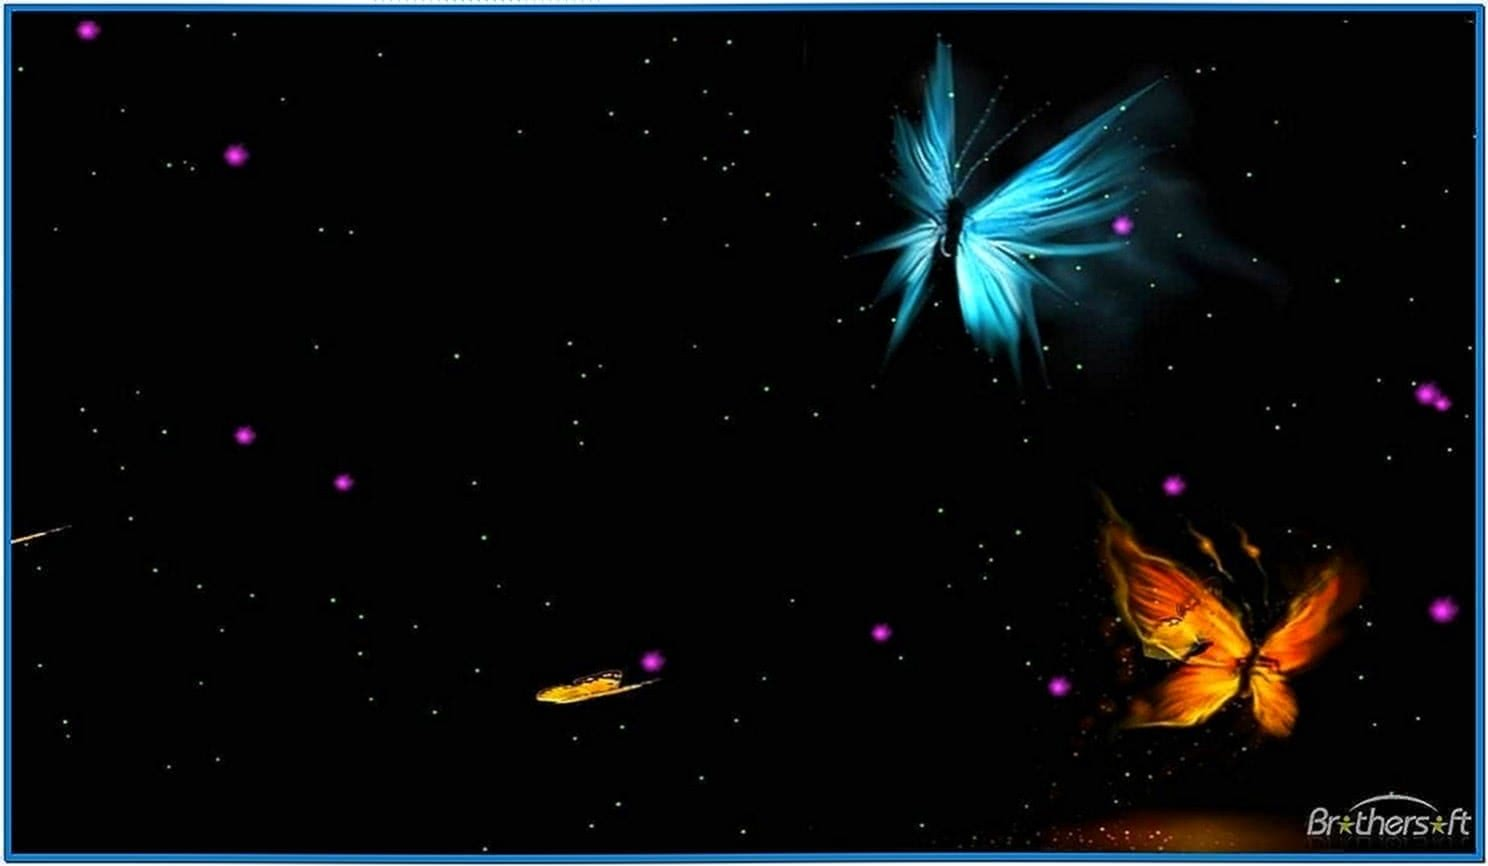 Animated gif screensaver windows vista - Download free